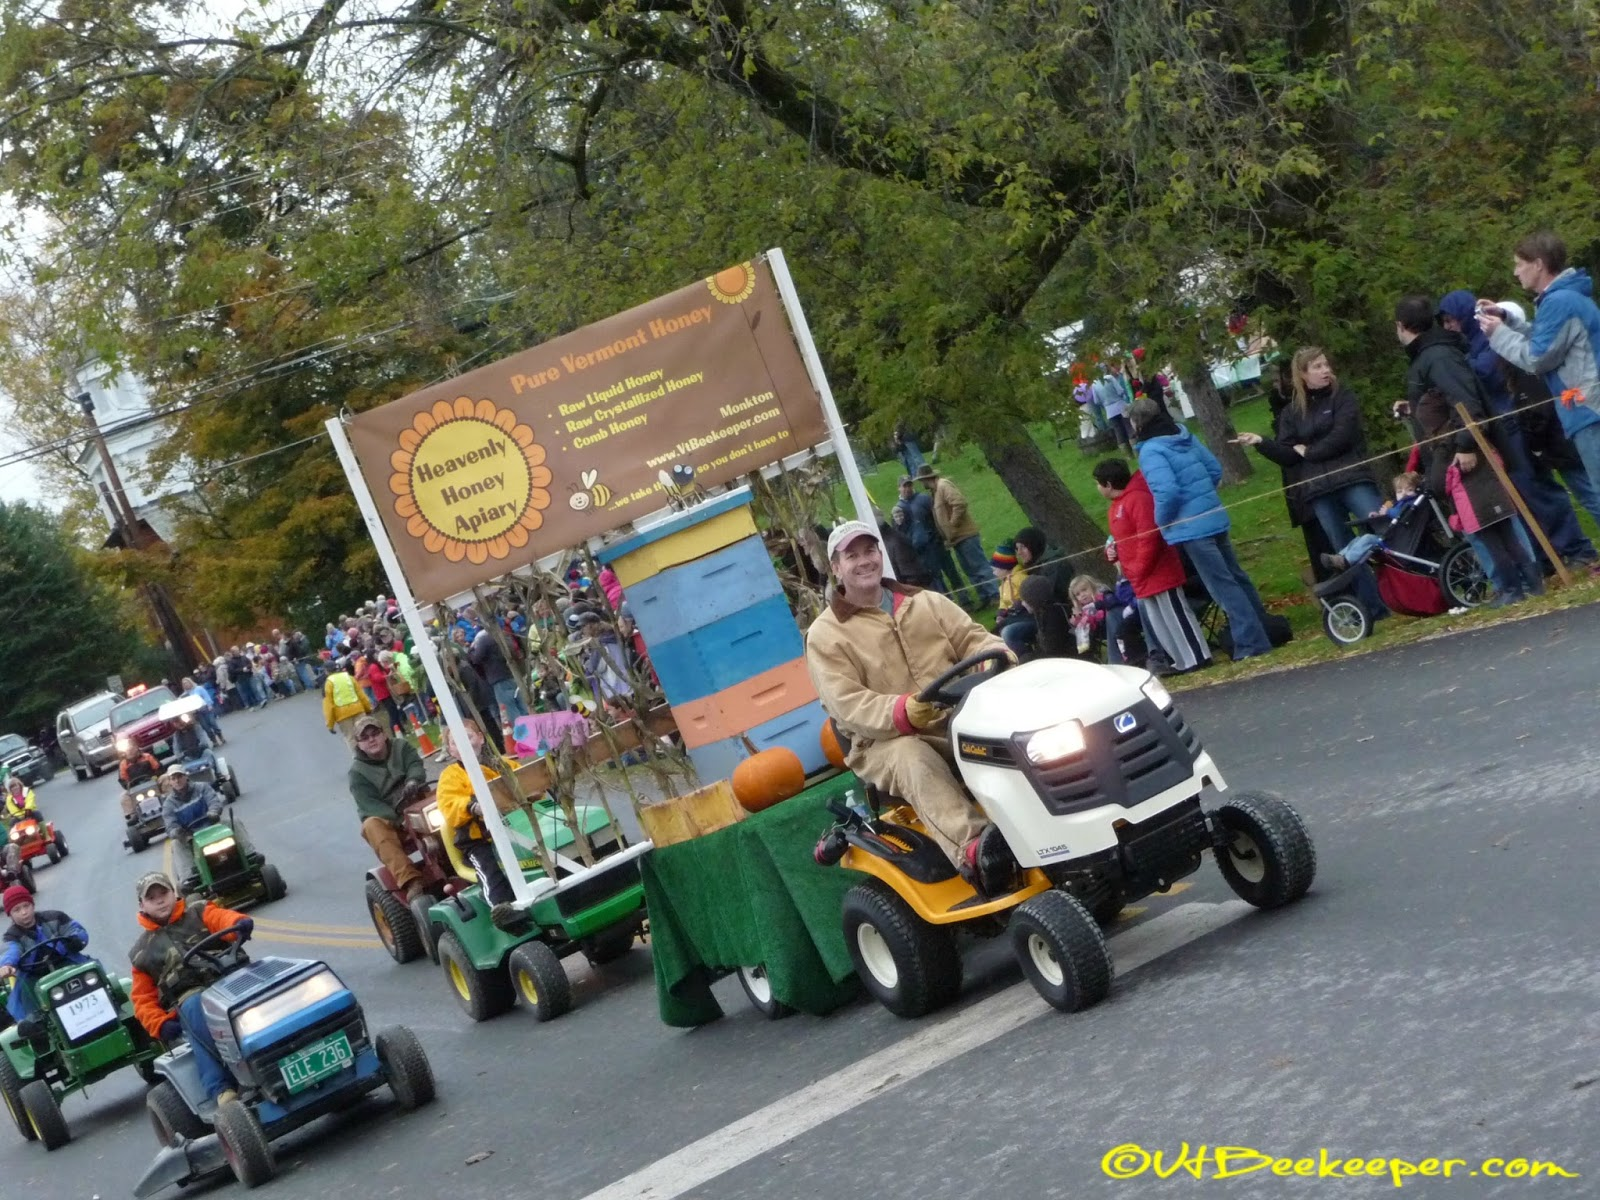 Tractor Parade Seat : Chronicles of a beekeeper wife